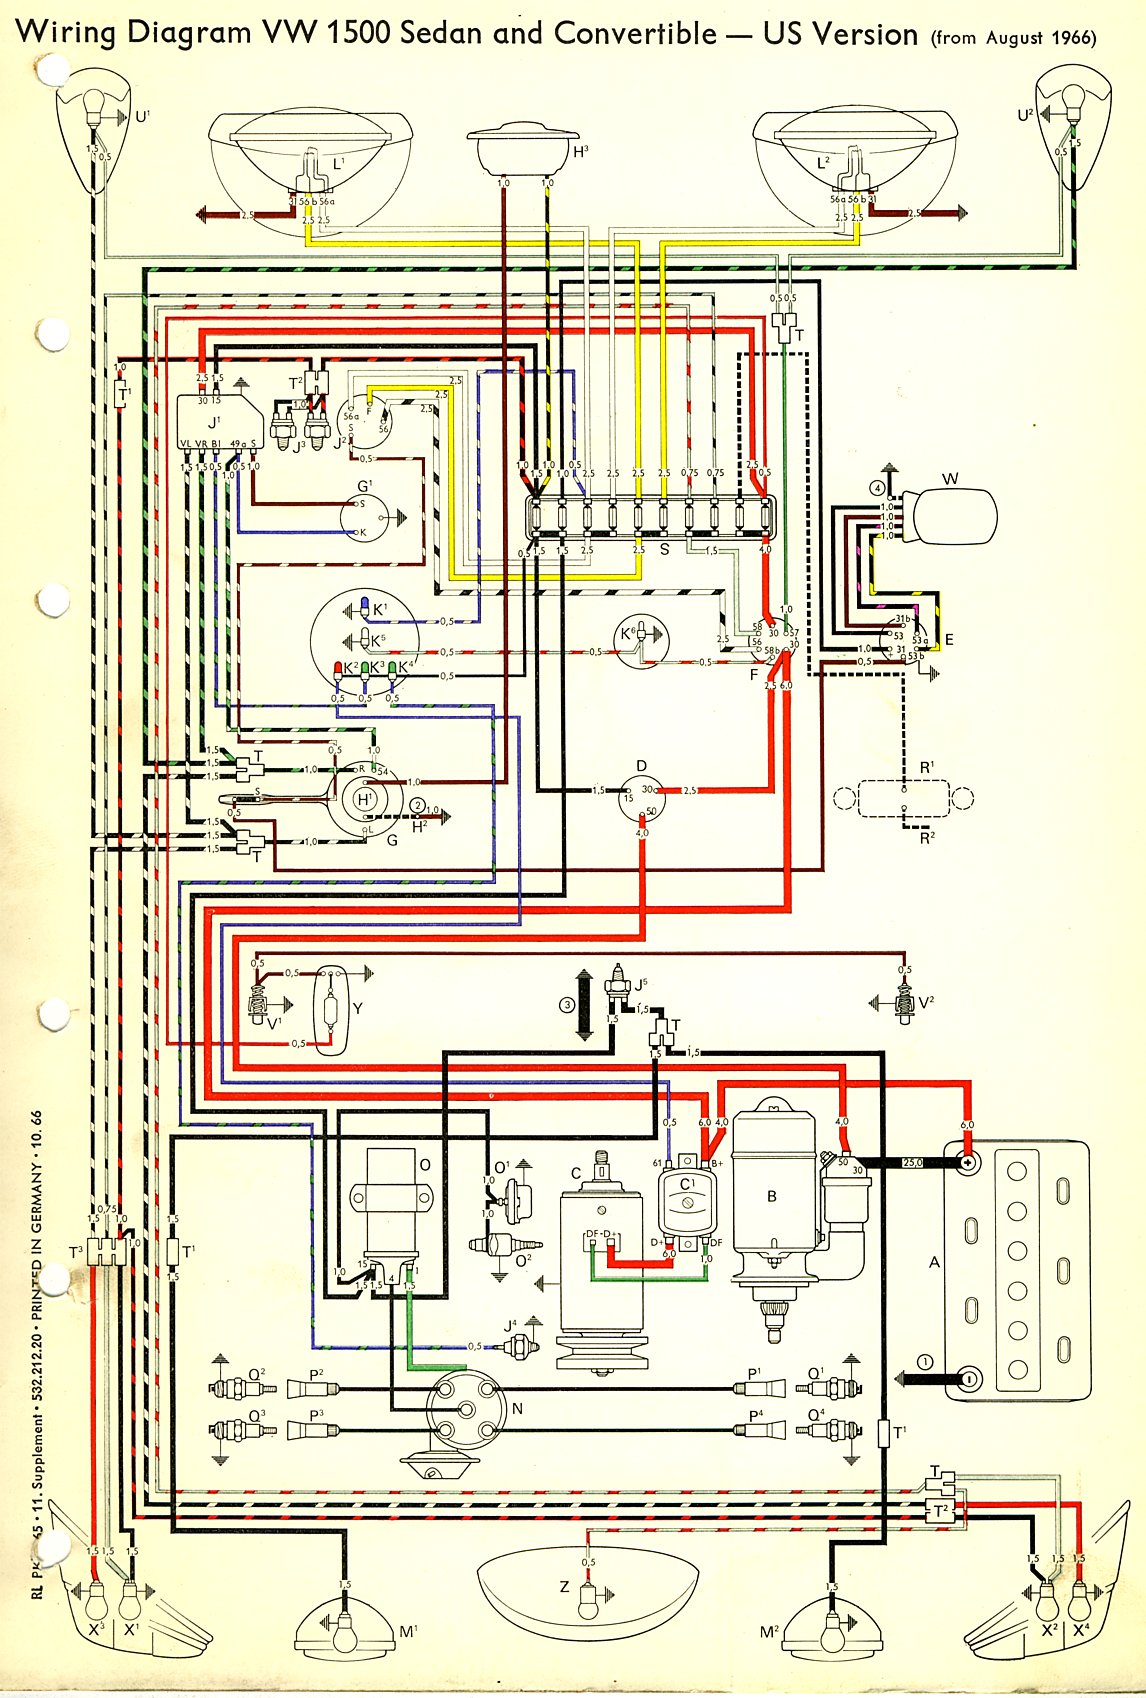 bug_67_USA thesamba com type 1 wiring diagrams 66 vw bug wiring diagram at webbmarketing.co